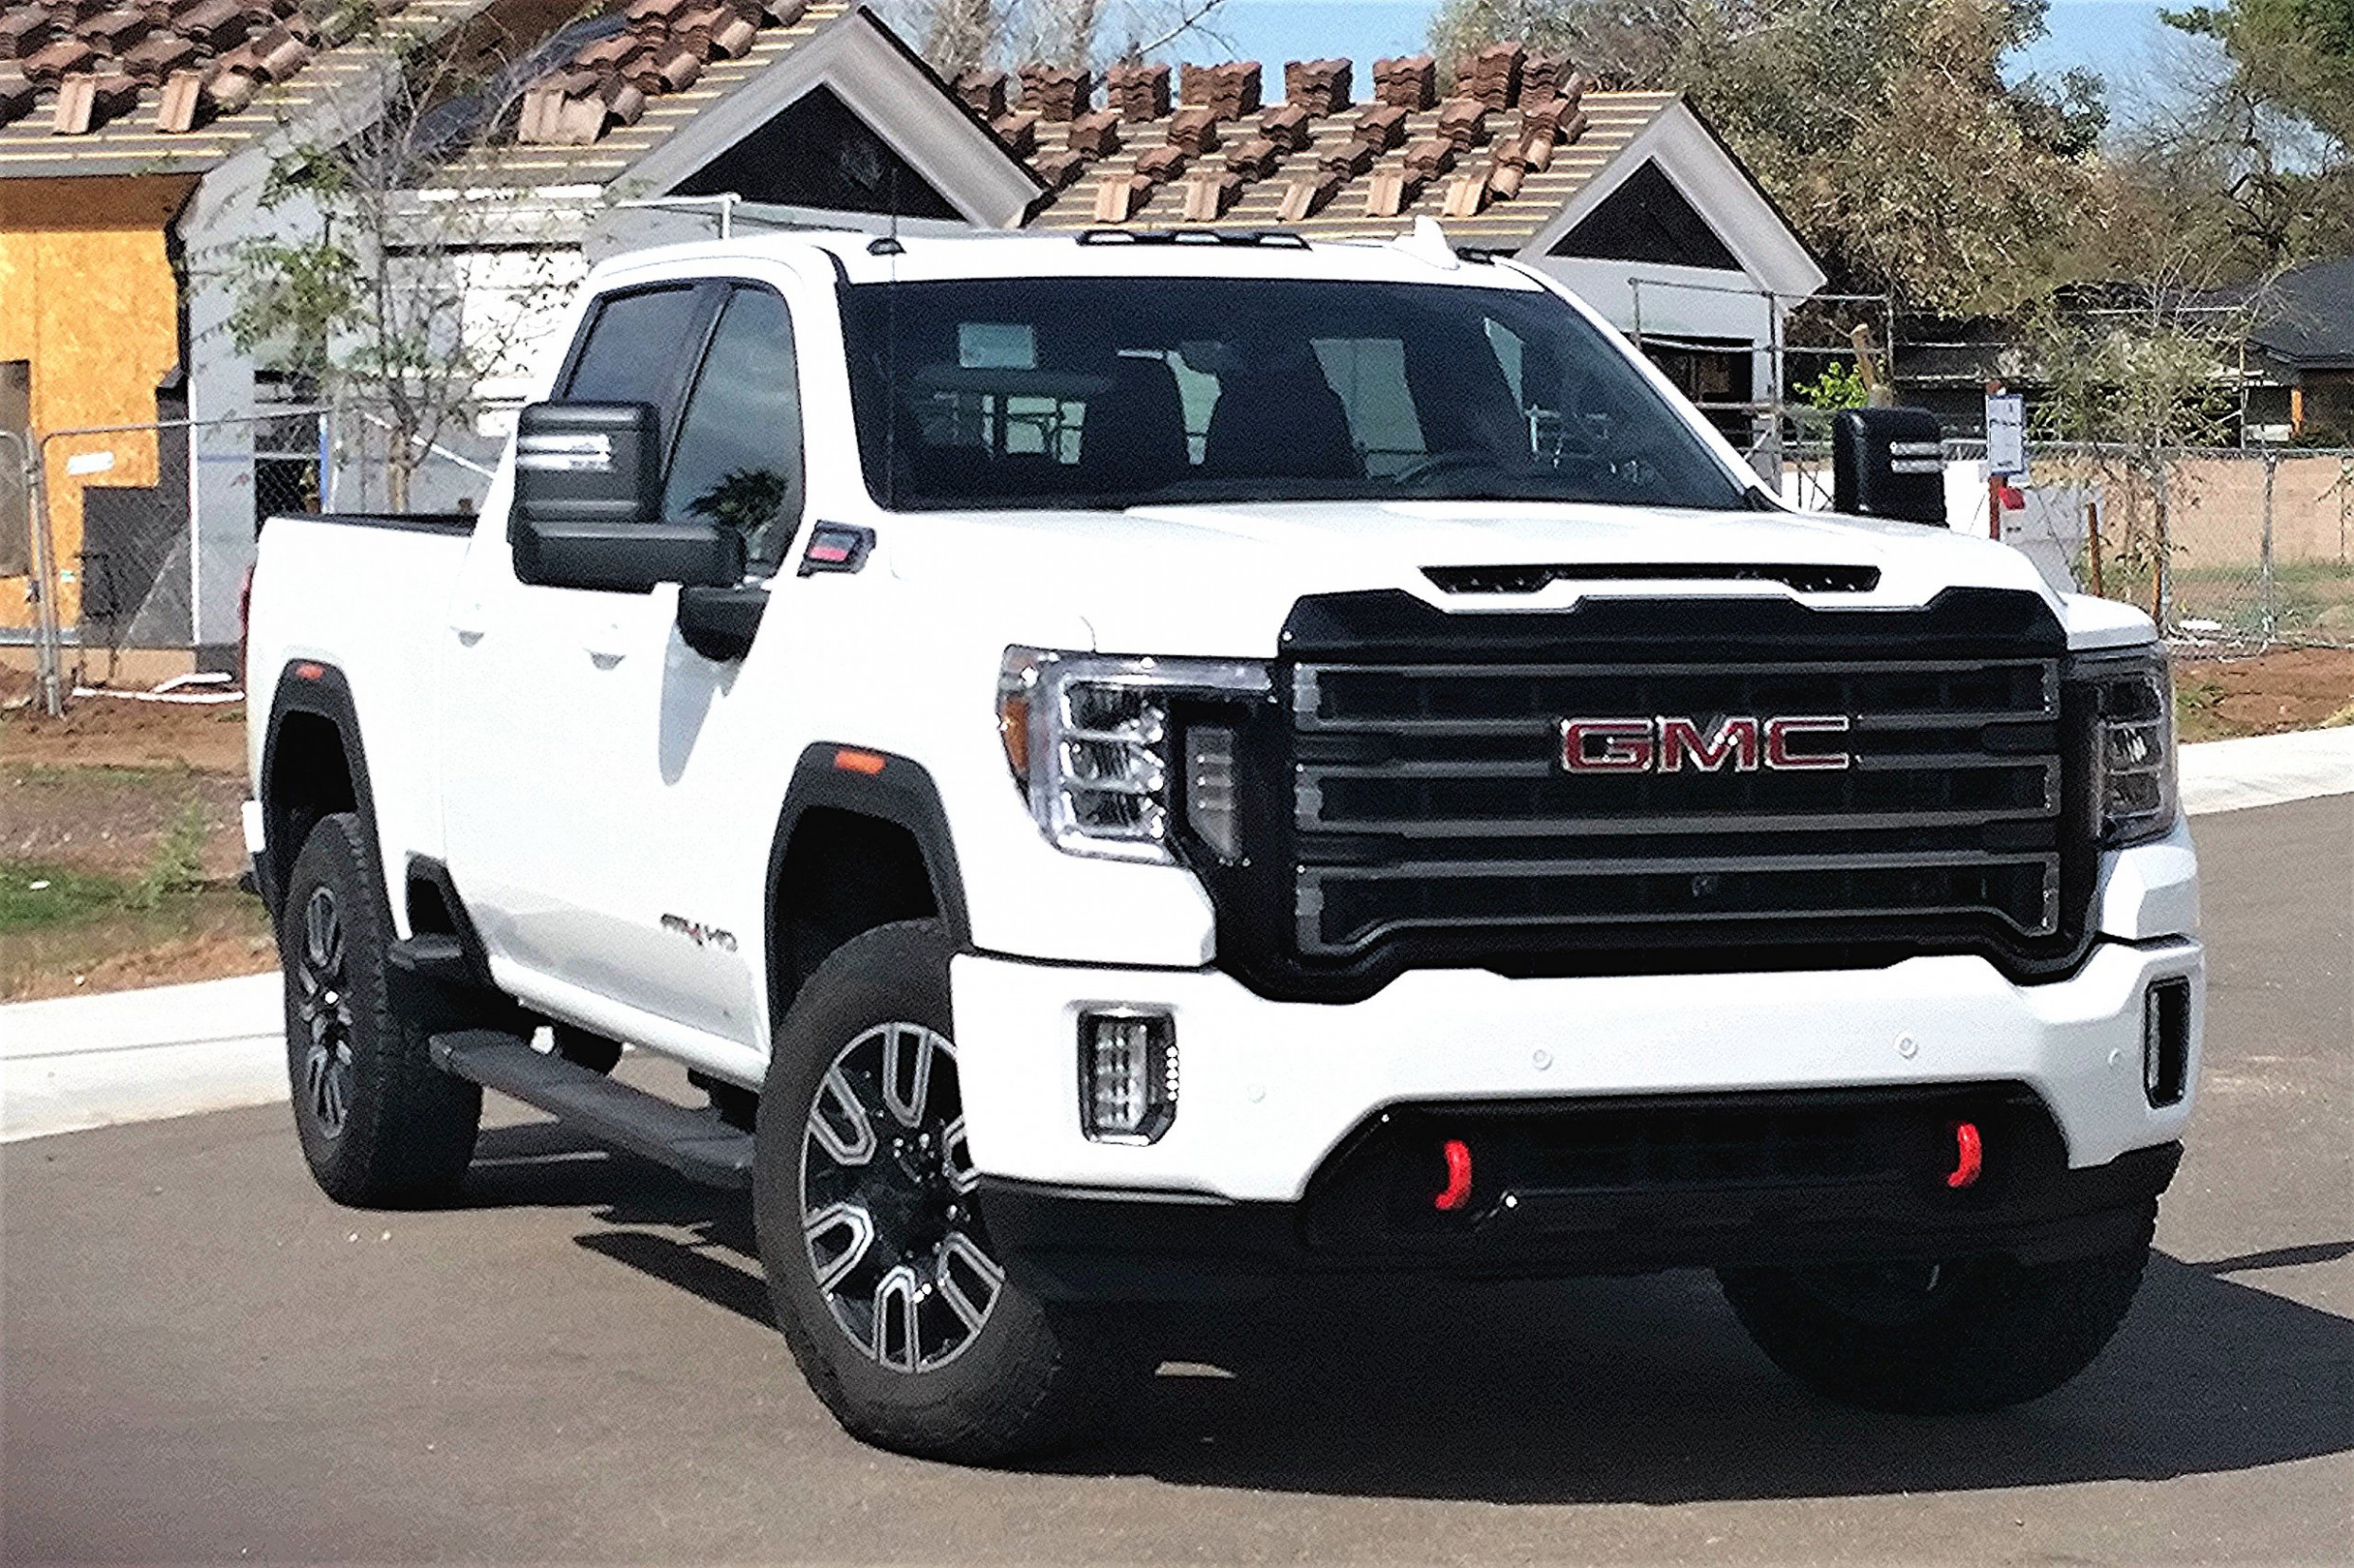 Massive 8 GMC Sierra 8 HD gets AT8 off-road gear - gmc work truck 2020